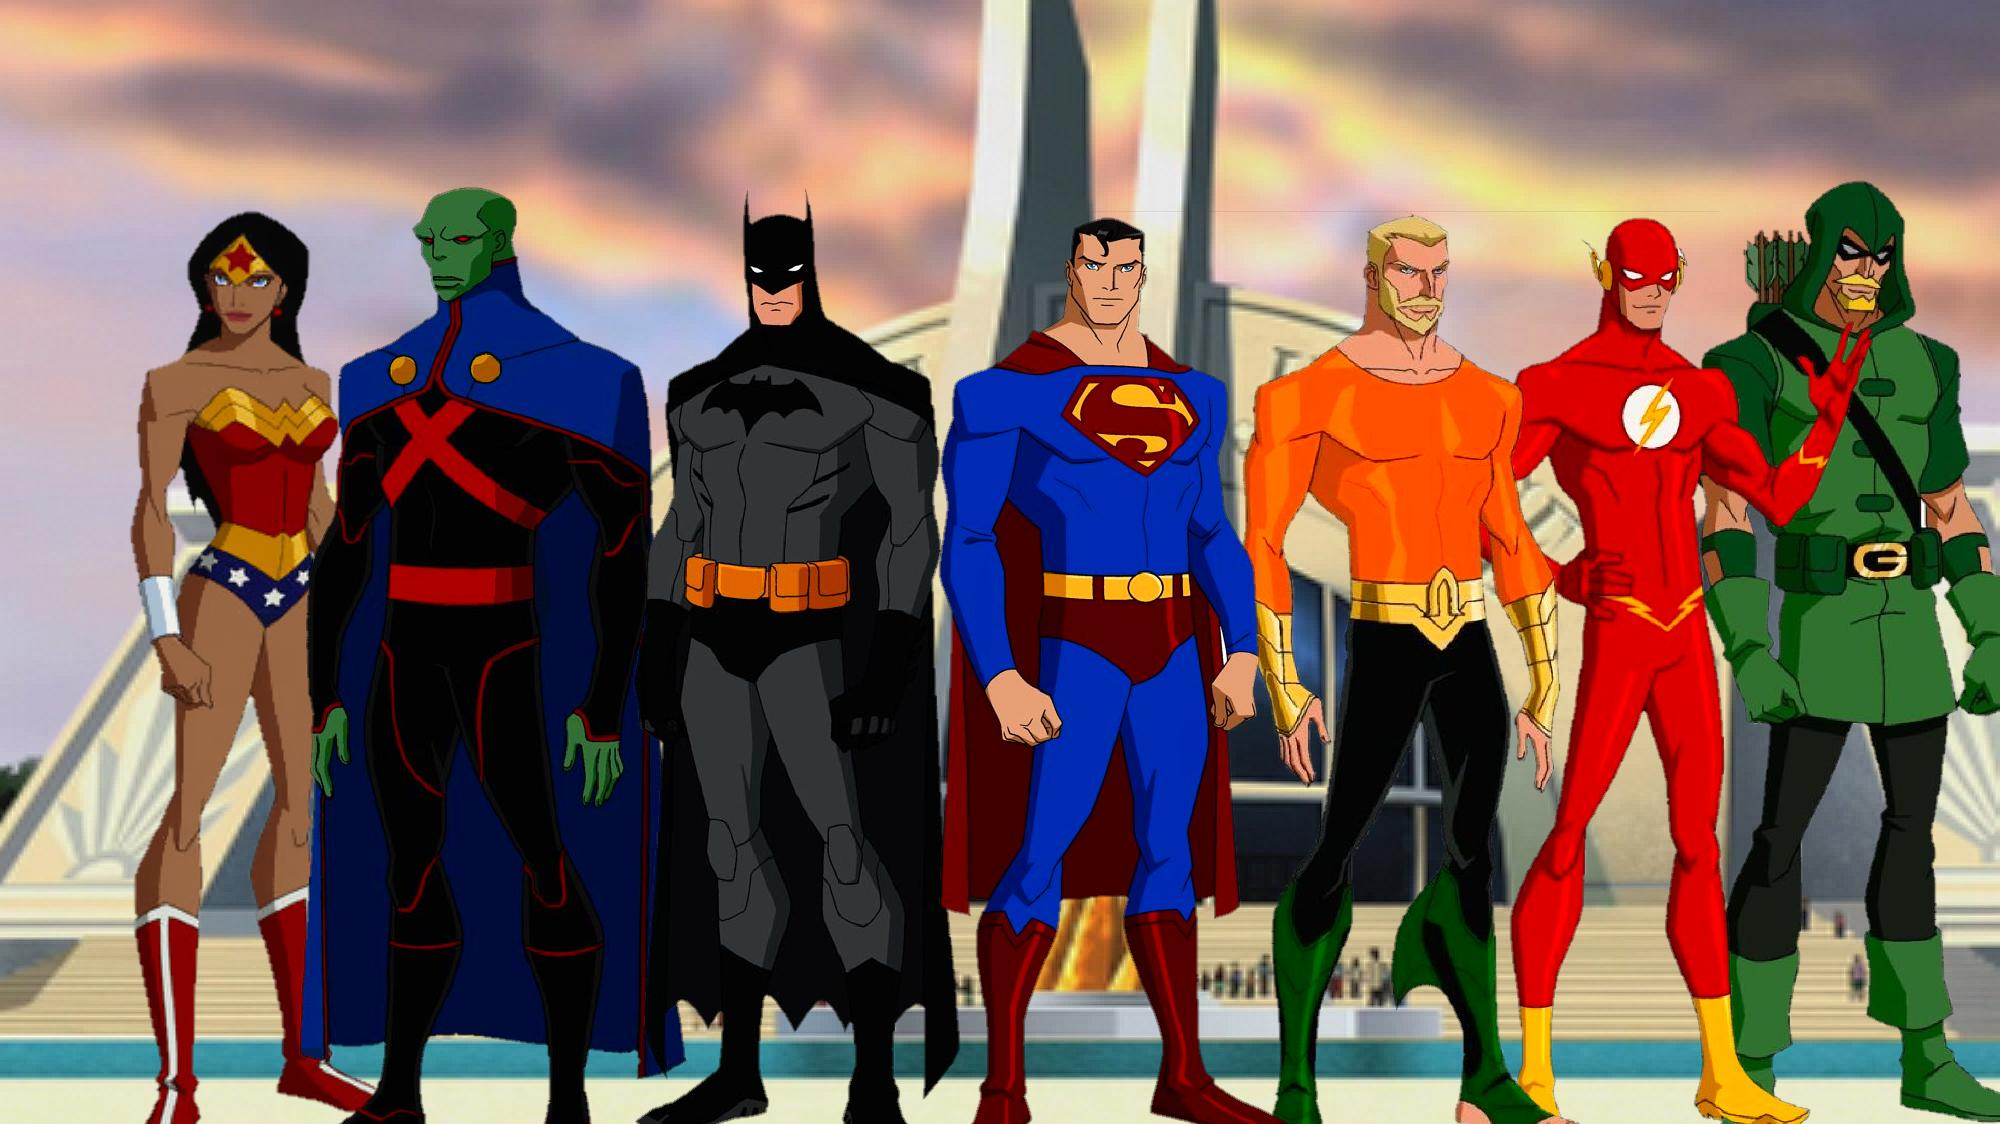 http://img4.wikia.nocookie.net/__cb20130104024846/justiciajoven/es/images/a/aa/Justice_league_Young_Justice.jpg